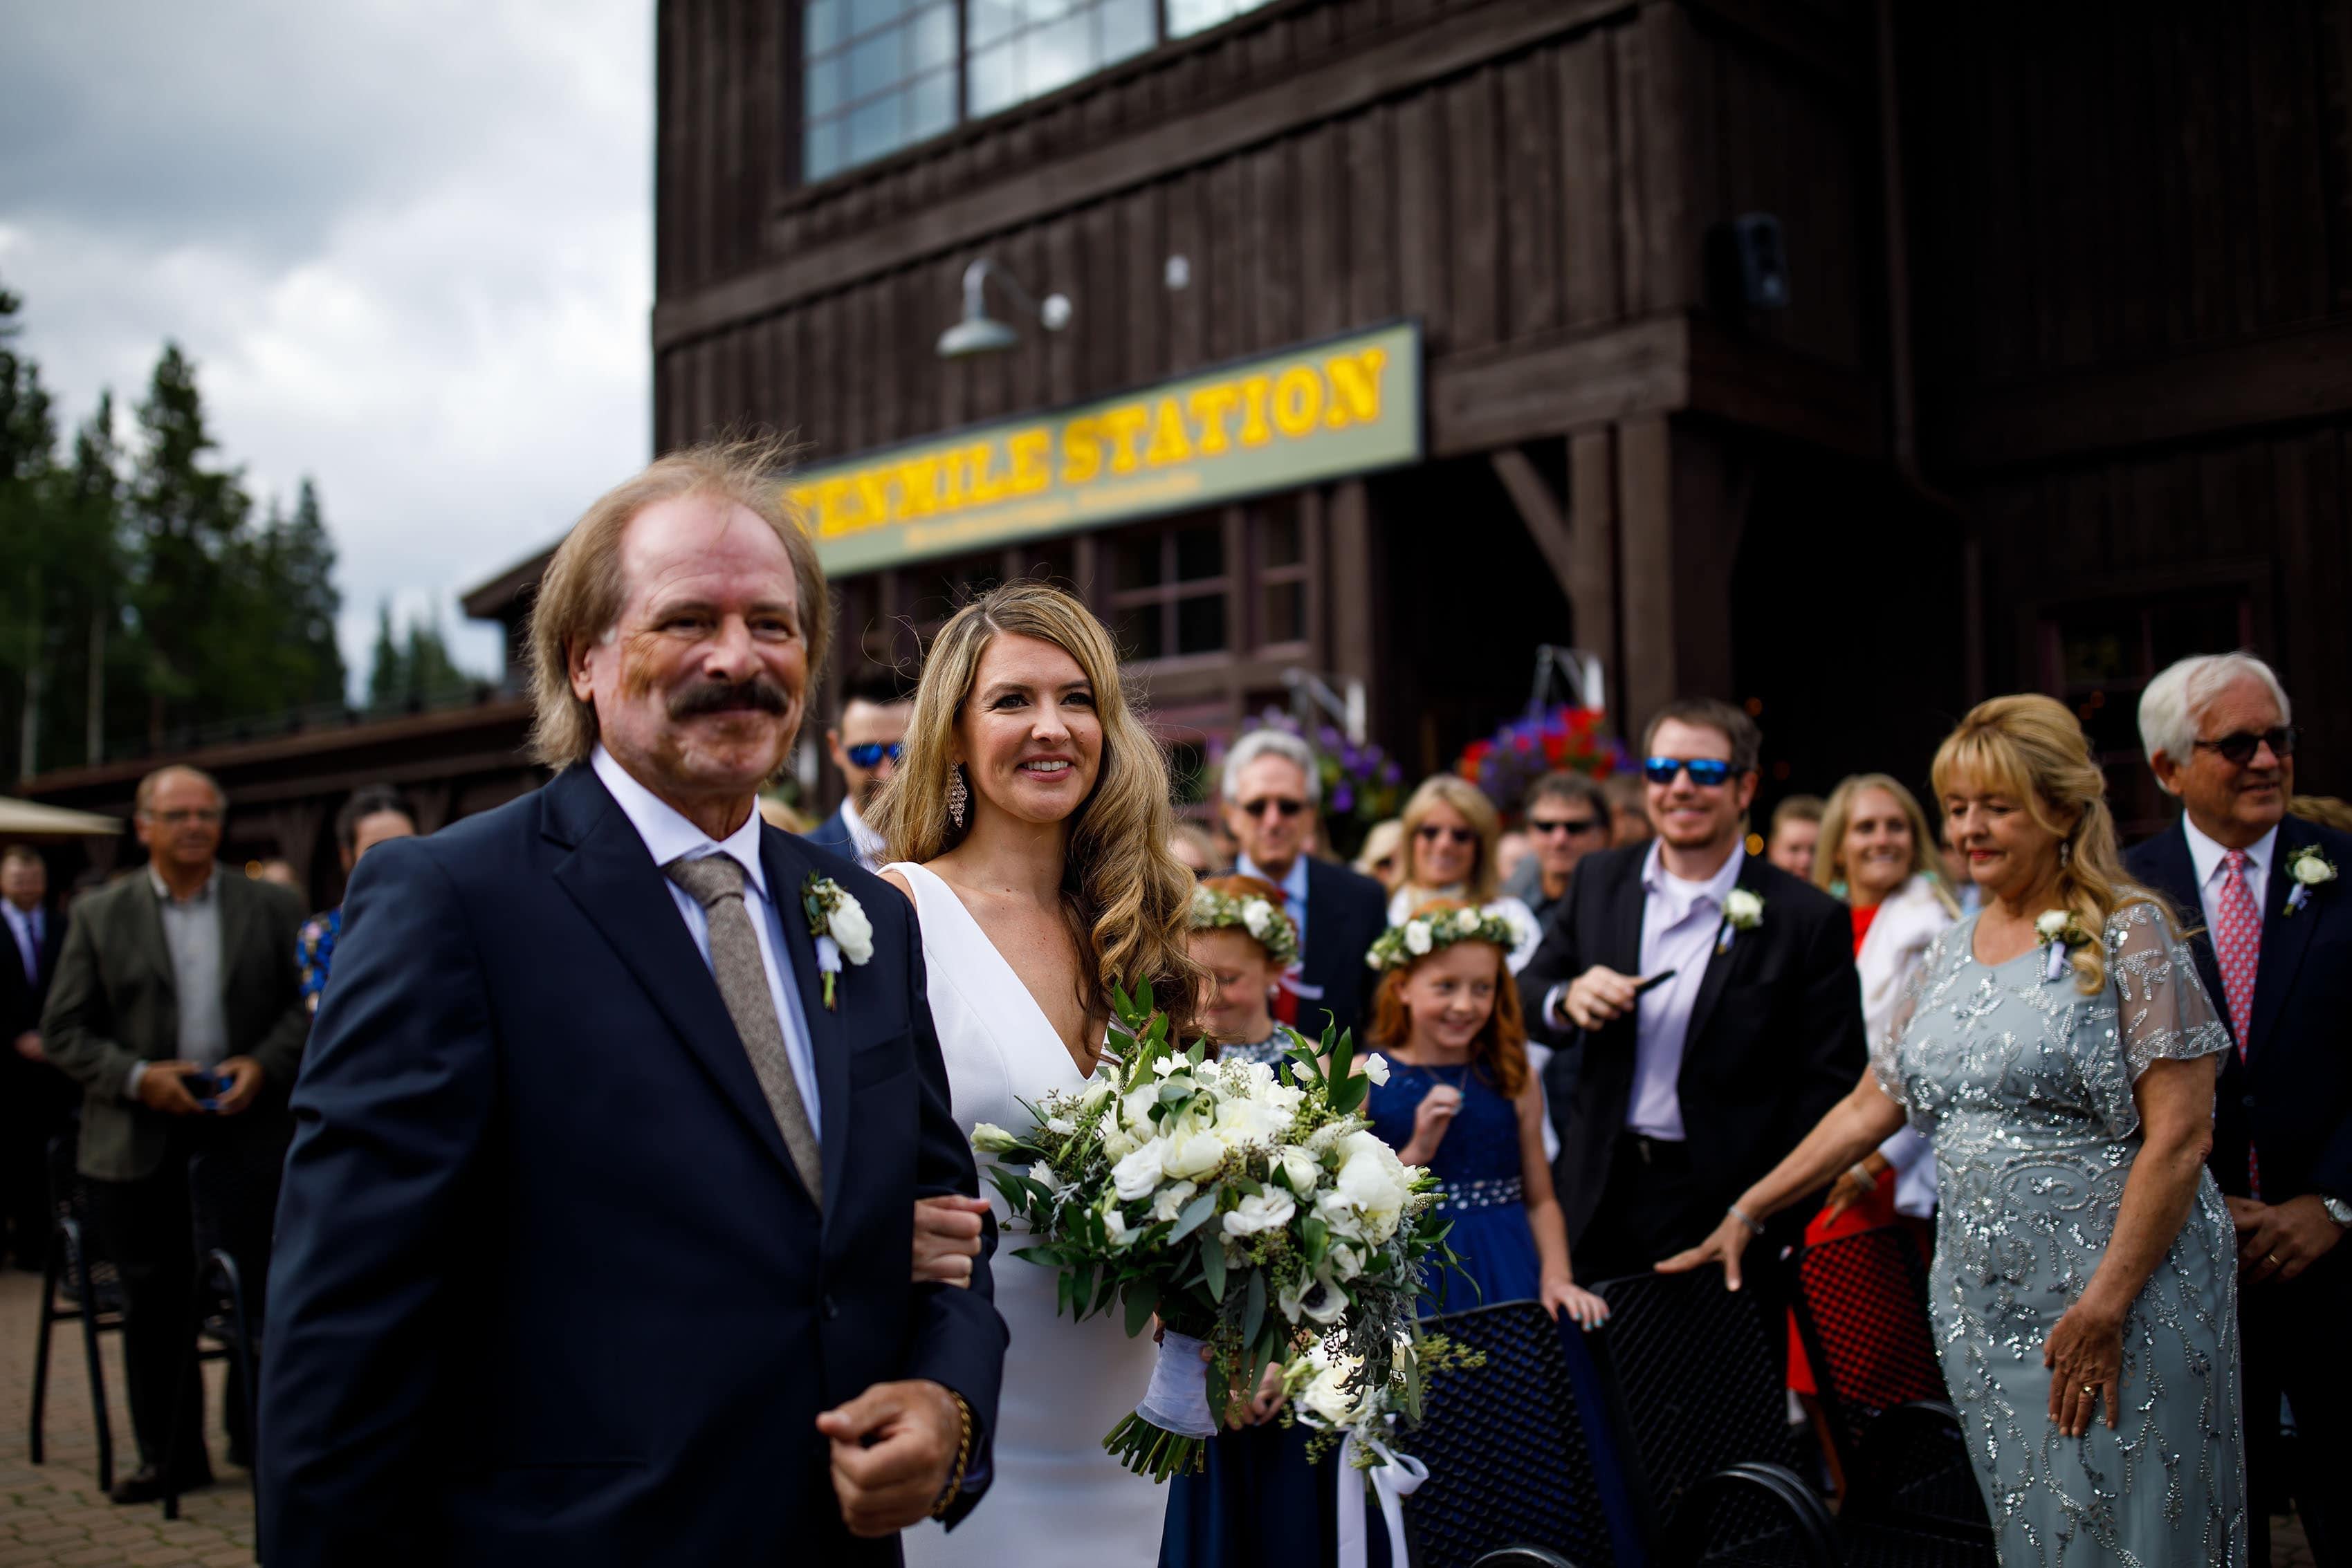 Heather walks down the aisle at TenMile